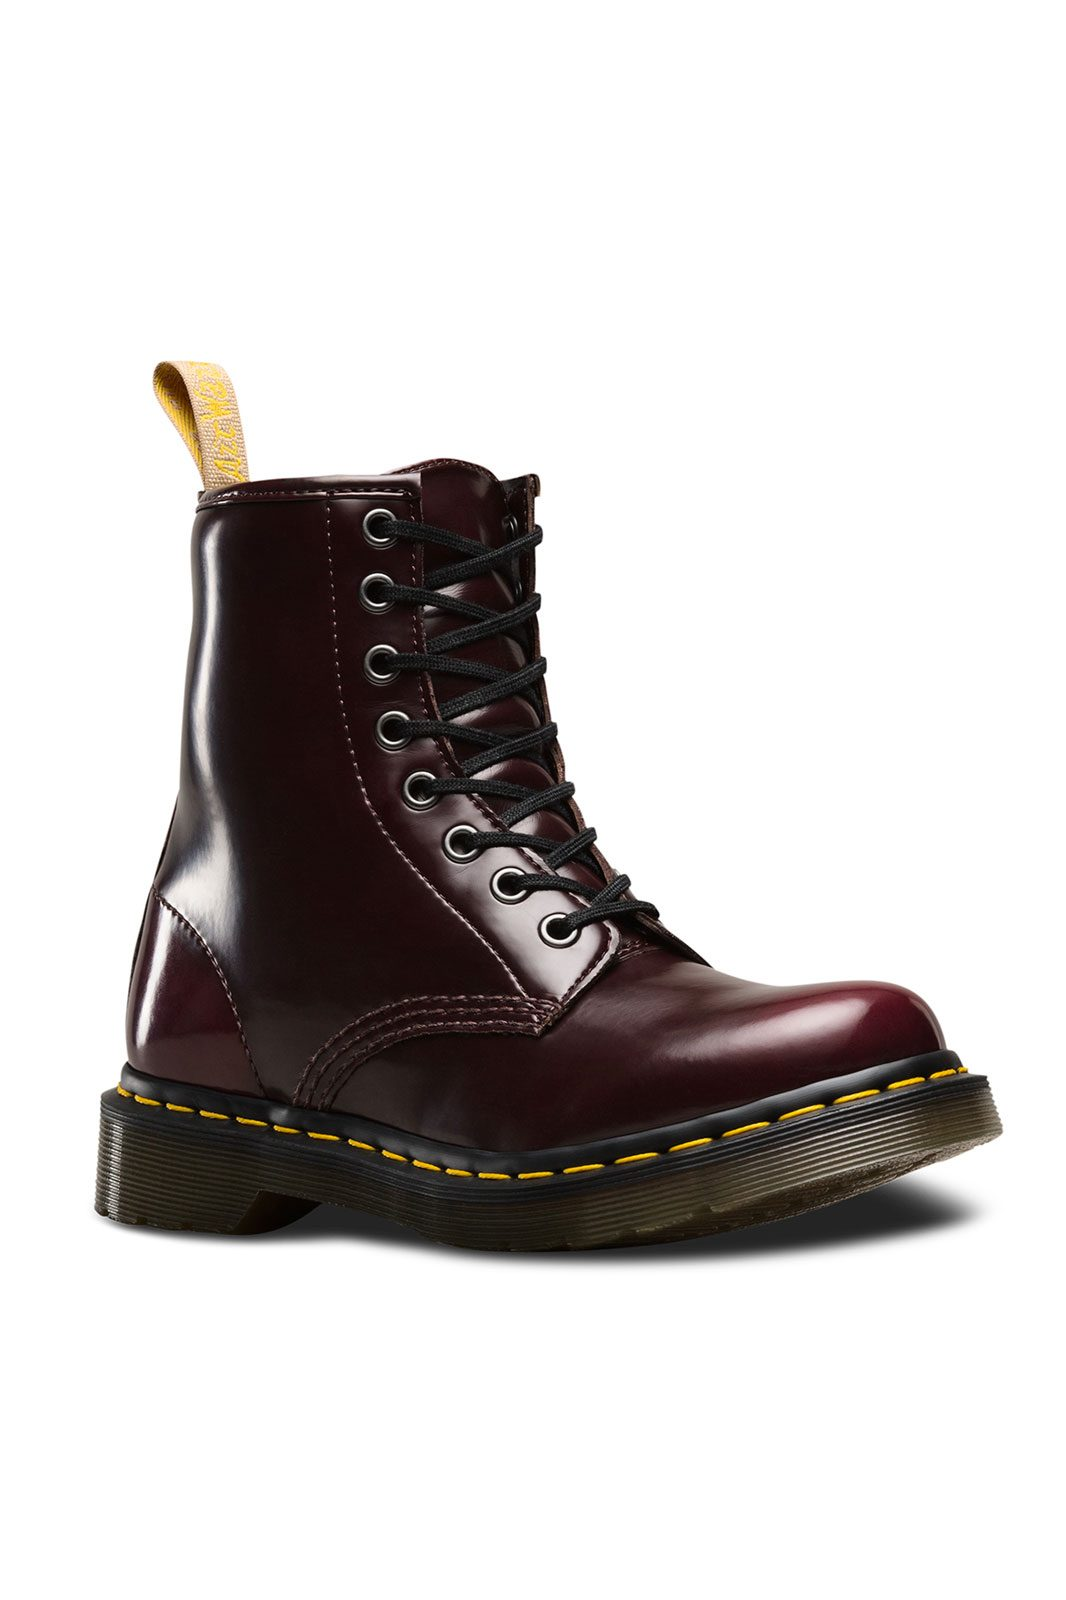 1460 Vegan Cherry Cambridge Front - Dr Martens